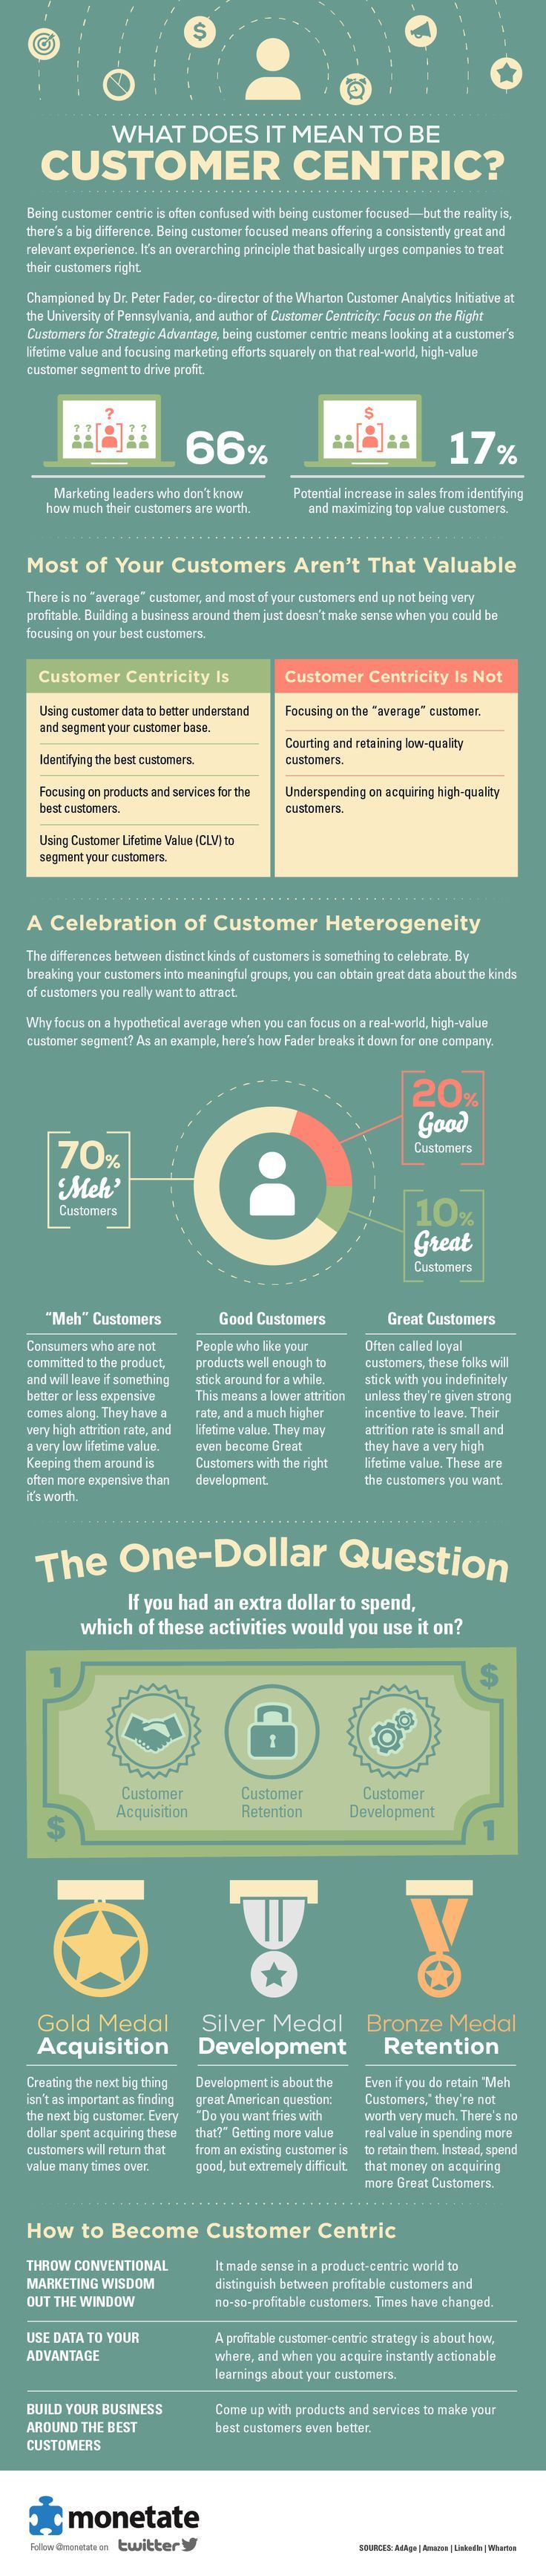 Psychology-Infographic-Championed-by-Dr.-Peter-Fader-author-of Psychology Infographic : Championed by Dr. Peter Fader, author of Customer Centricity: Focus on the Right...